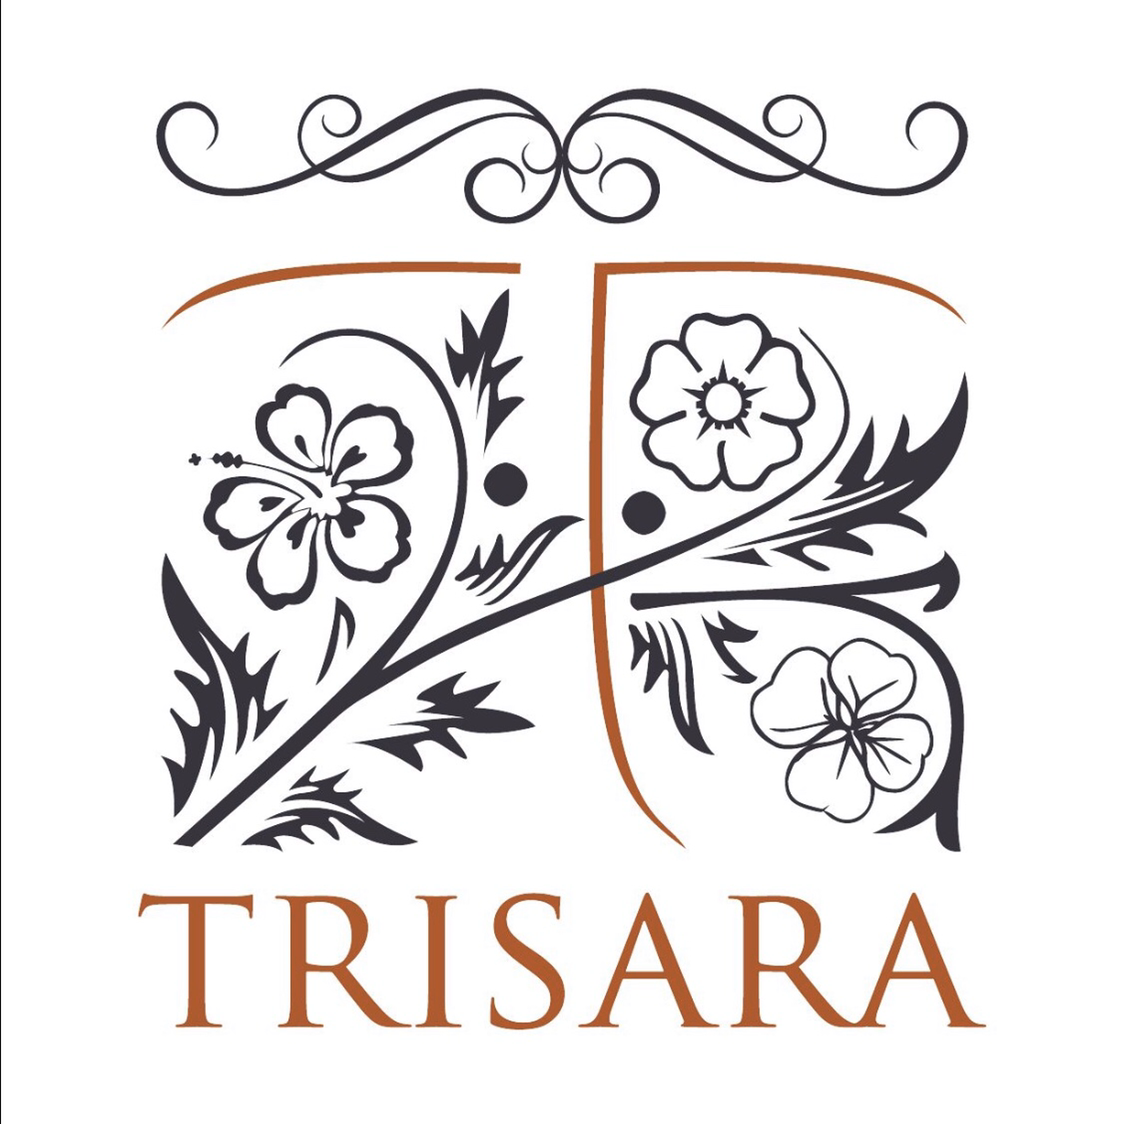 Trisara Design & Build